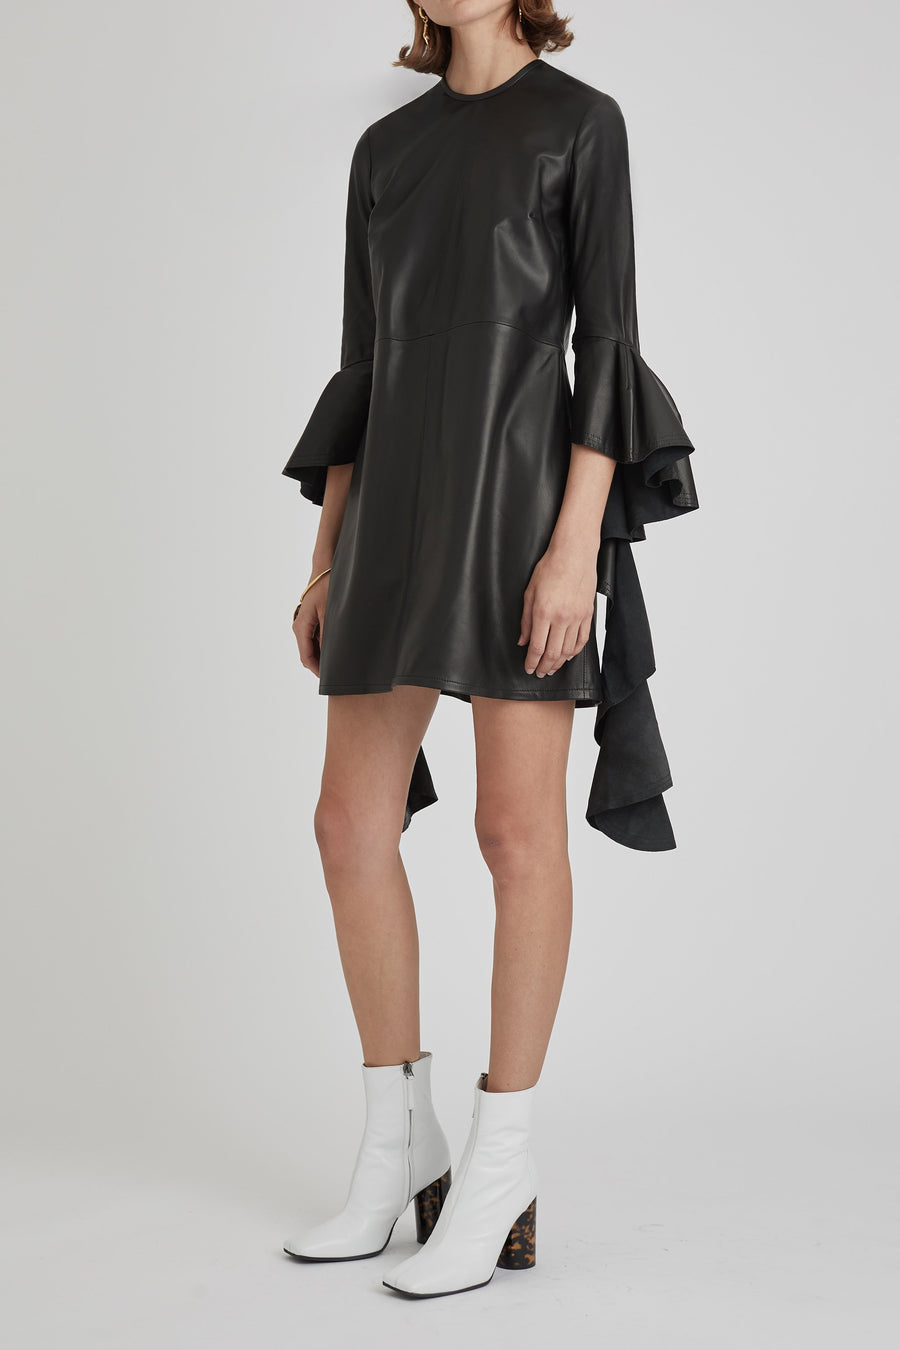 Kilkenny Frill Sleeve Mini Dress Black